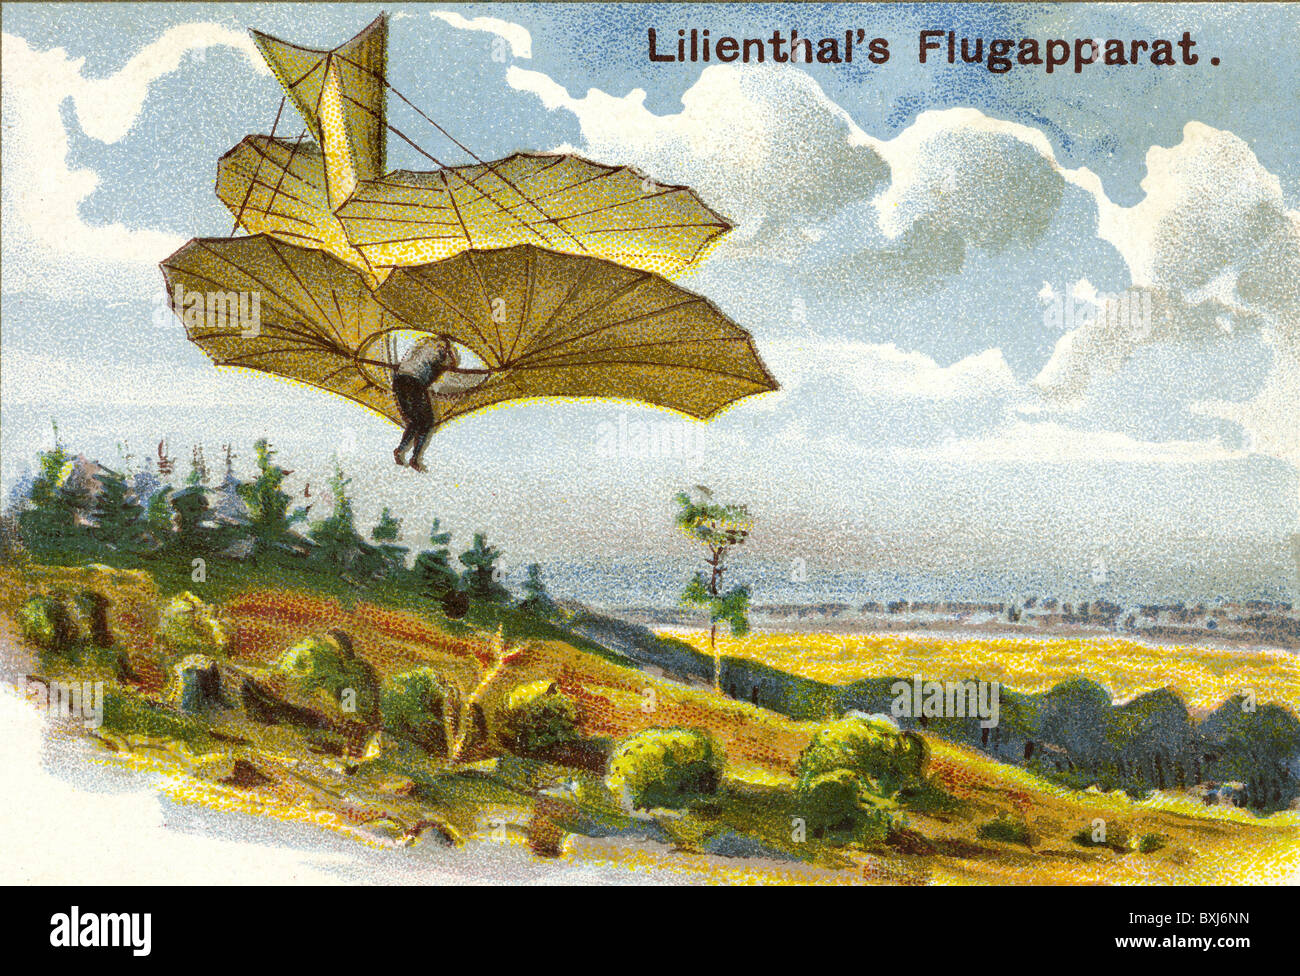 Lilienthal, Otto, 1848 - 1896, with one of his first aircraft, Germany, 1895, 1890s, 19th century, historic, historical, - Stock Image